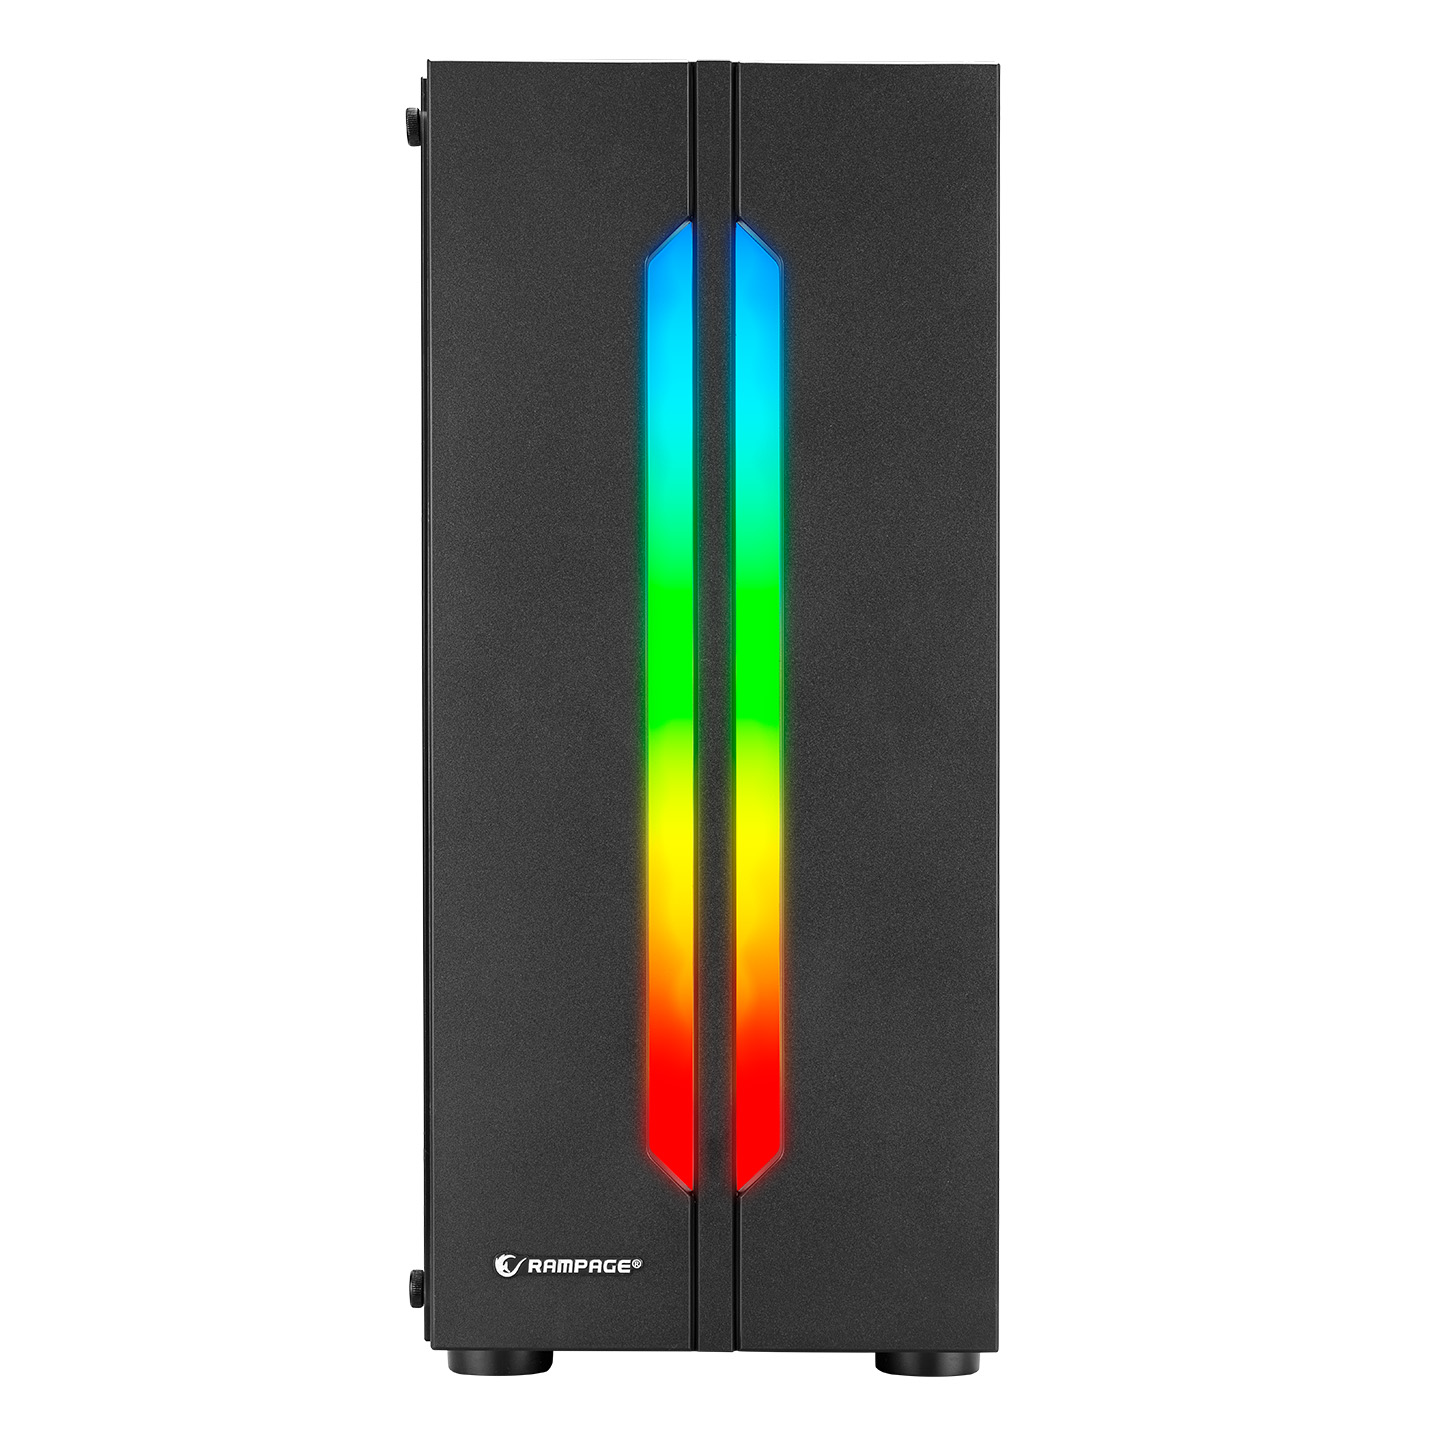 Rampage SPECTRA Tempered Glass Rainbow Fan ve Ledli 1*Usb 3.0 + 2* Usb 2.0 Gaming Kasa